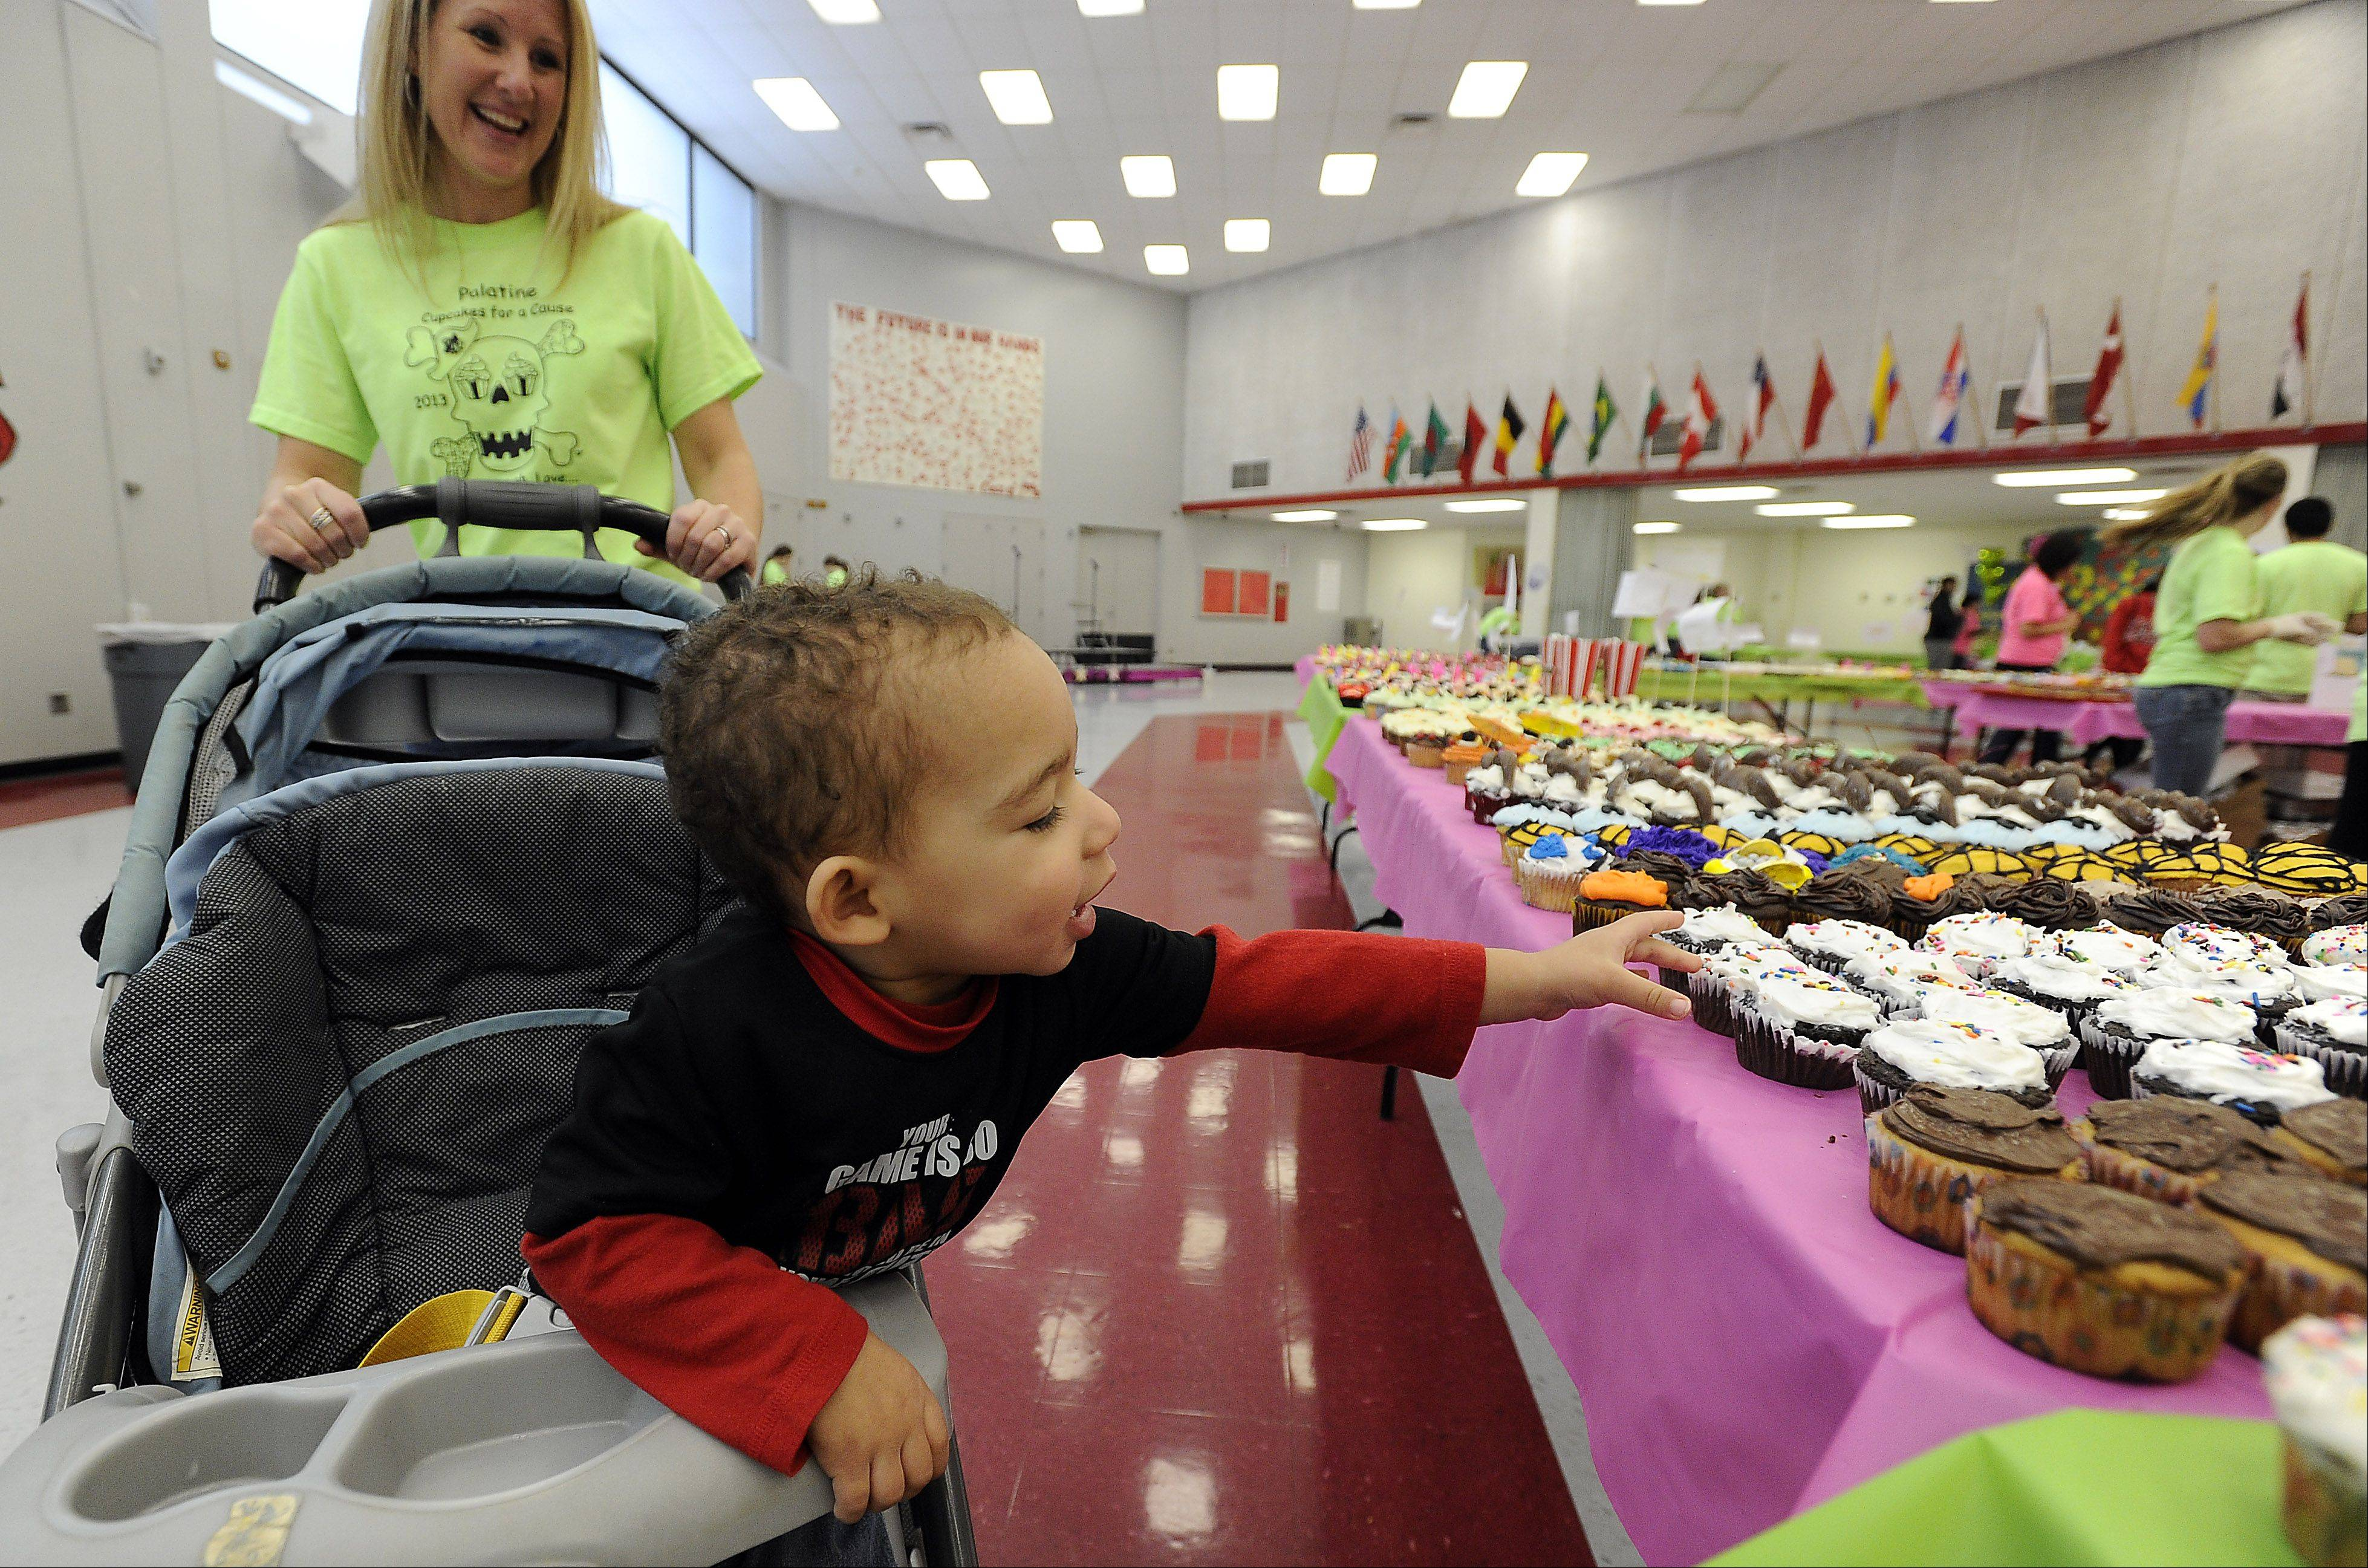 Jayden Wright, 2, and his mom Deanna check out over 2000 cupcakes for sale as part of the cupcake fundraiser at Palatine High School Saturday.